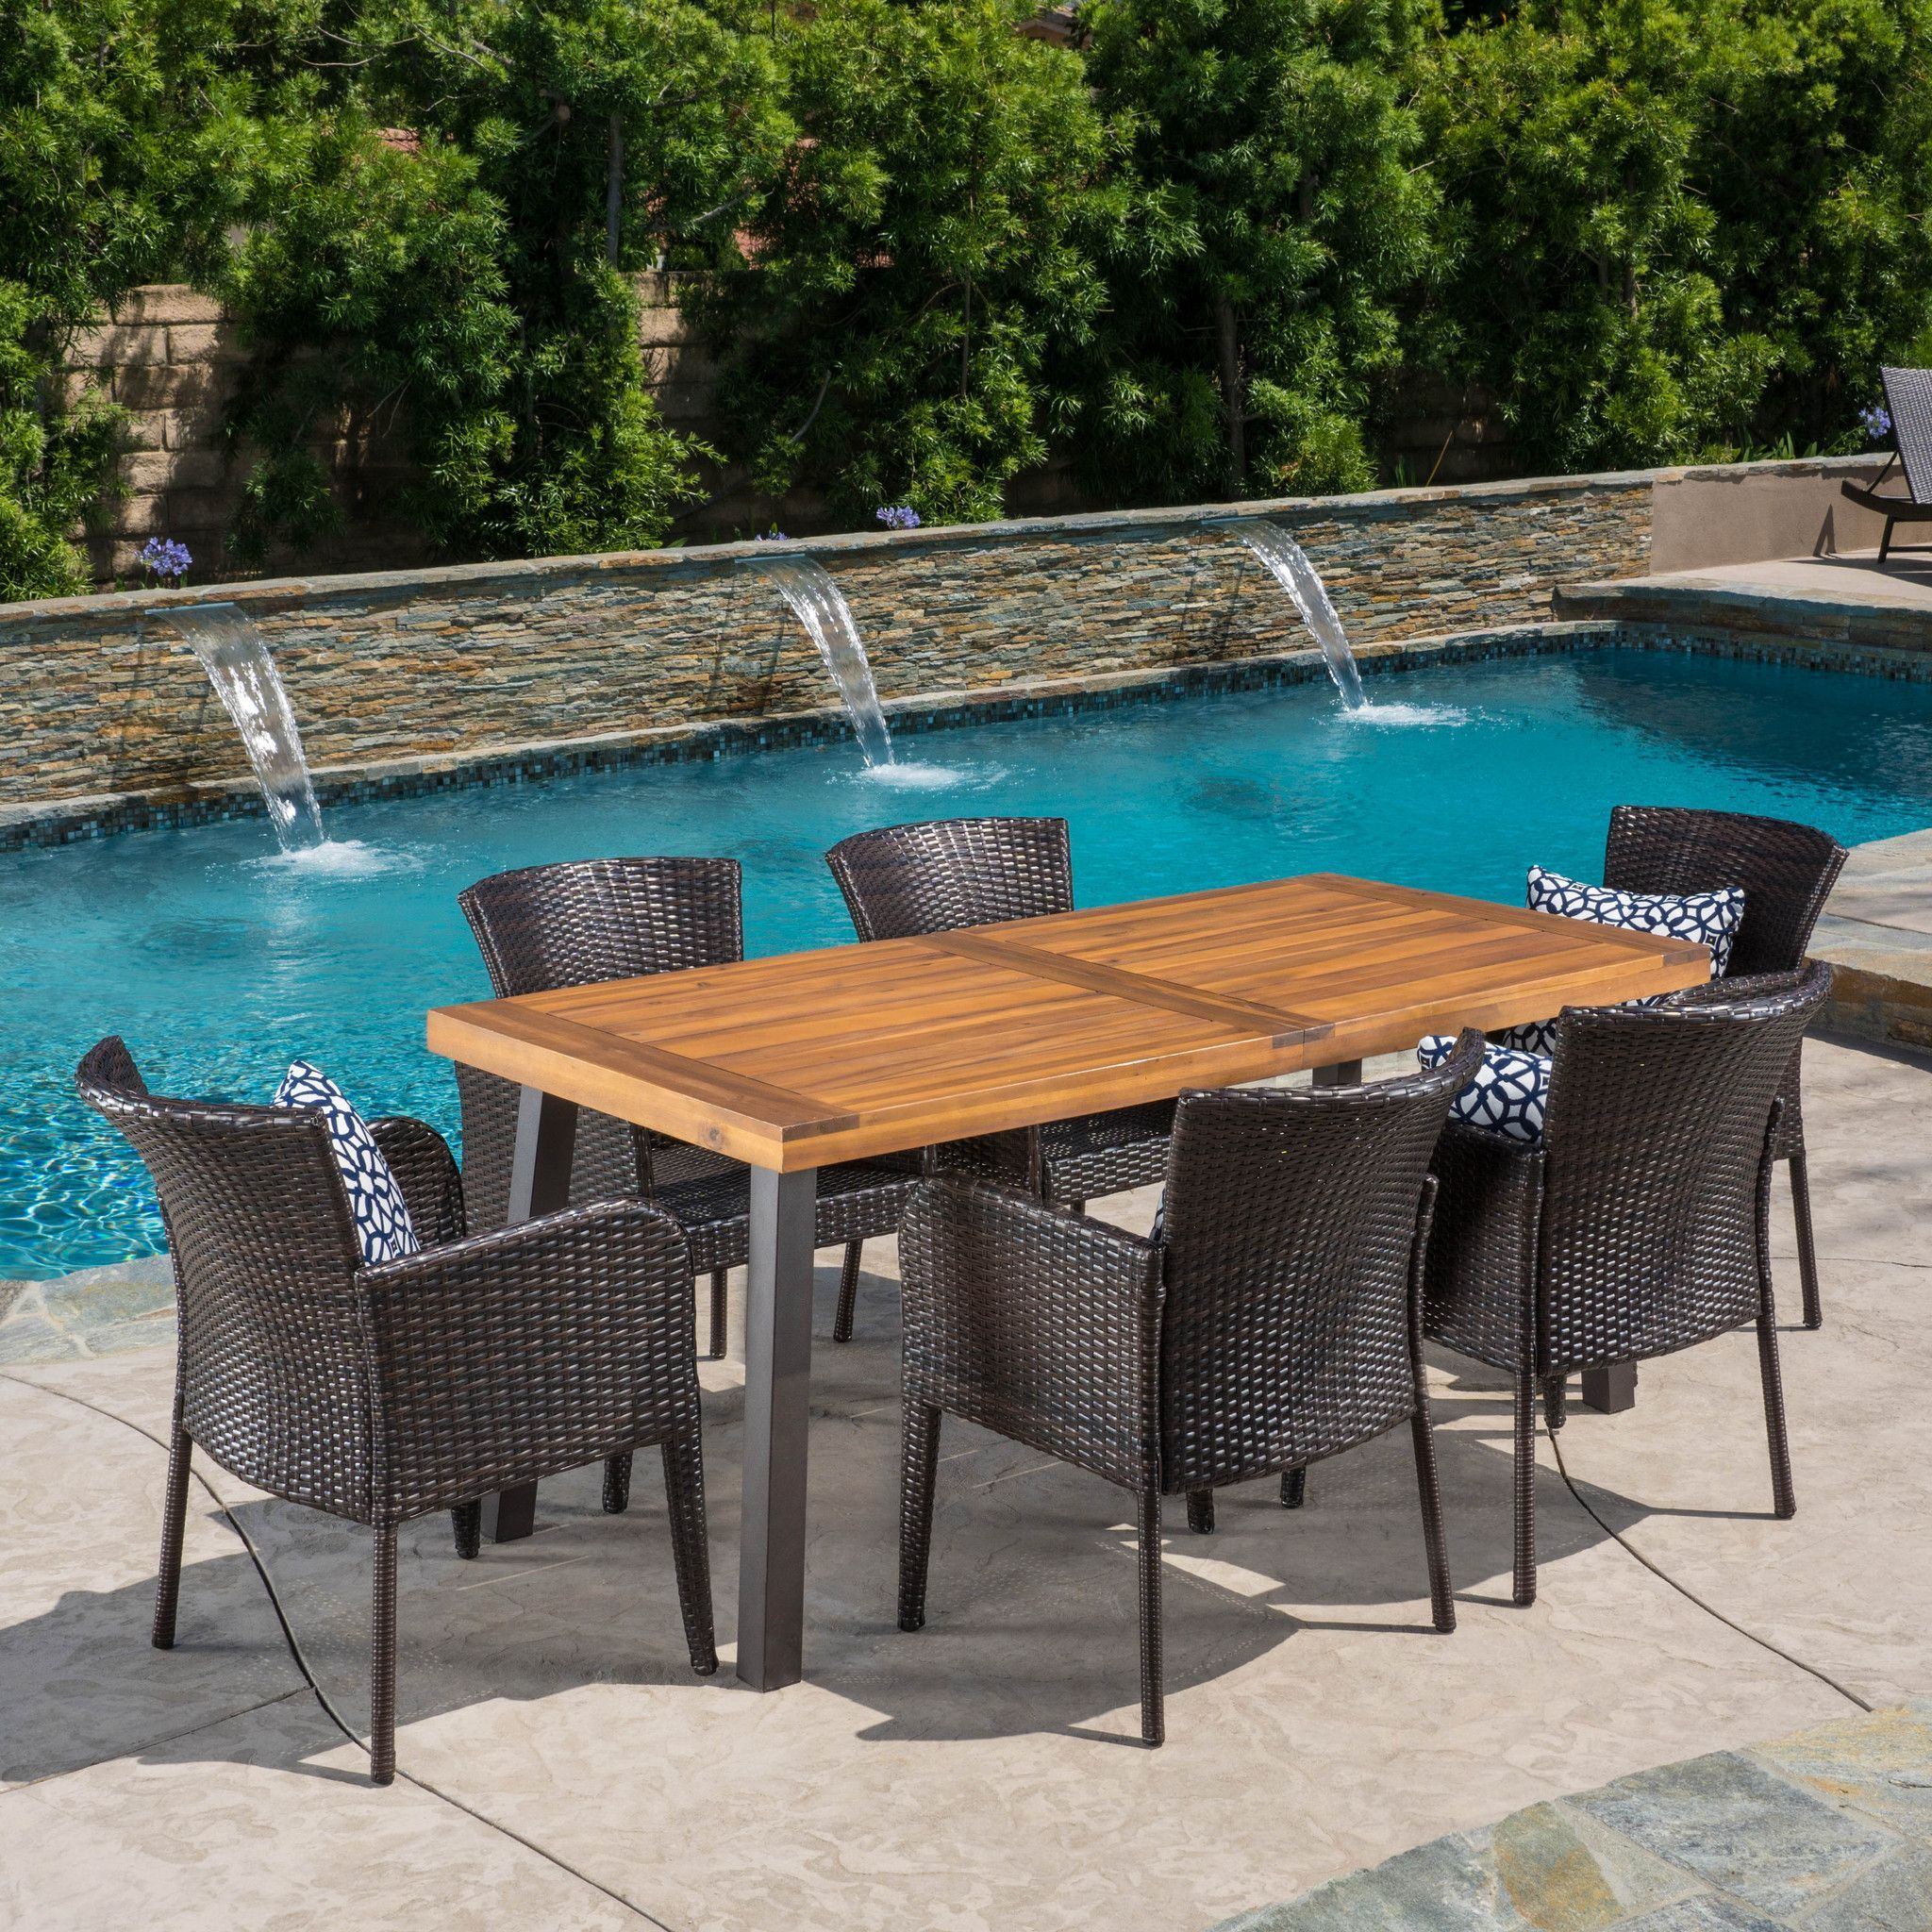 ad helton 7 piece outdoor dining set wood table w wicker chairs